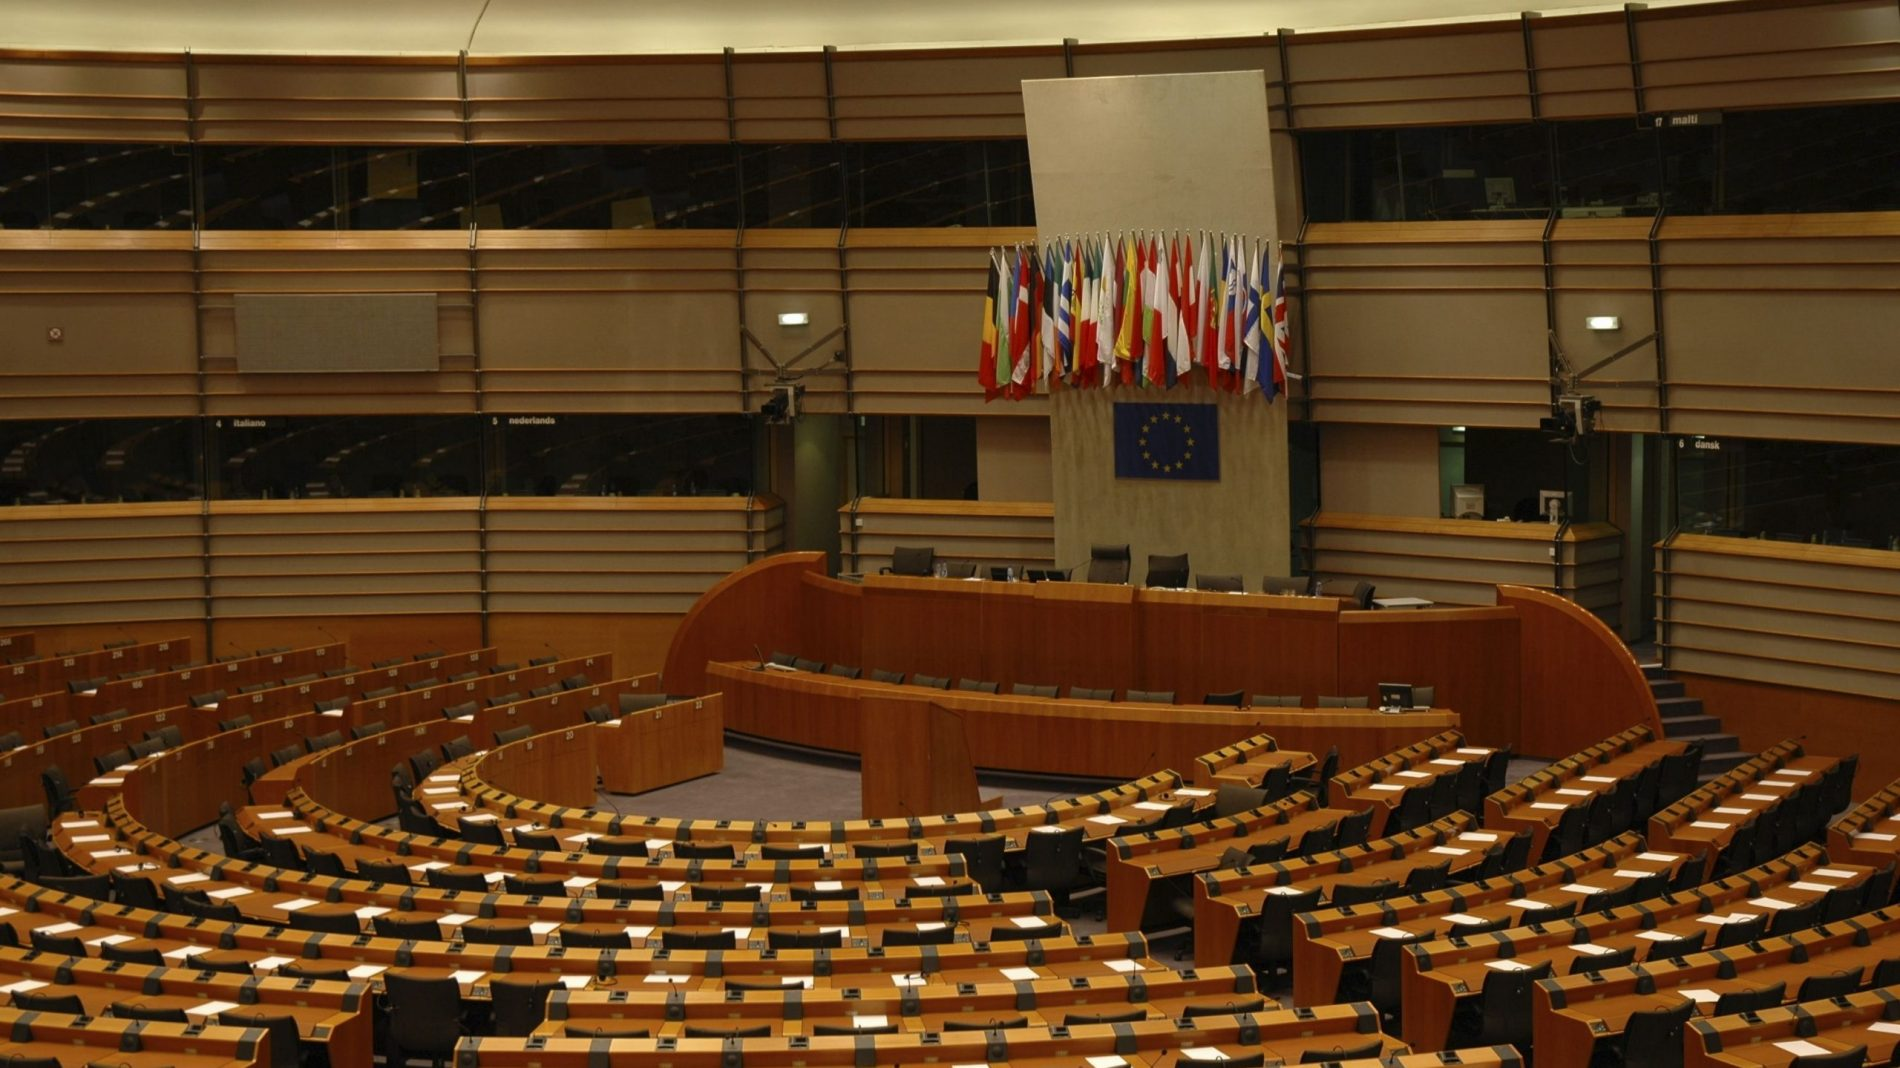 the hemicycle of the european parliament